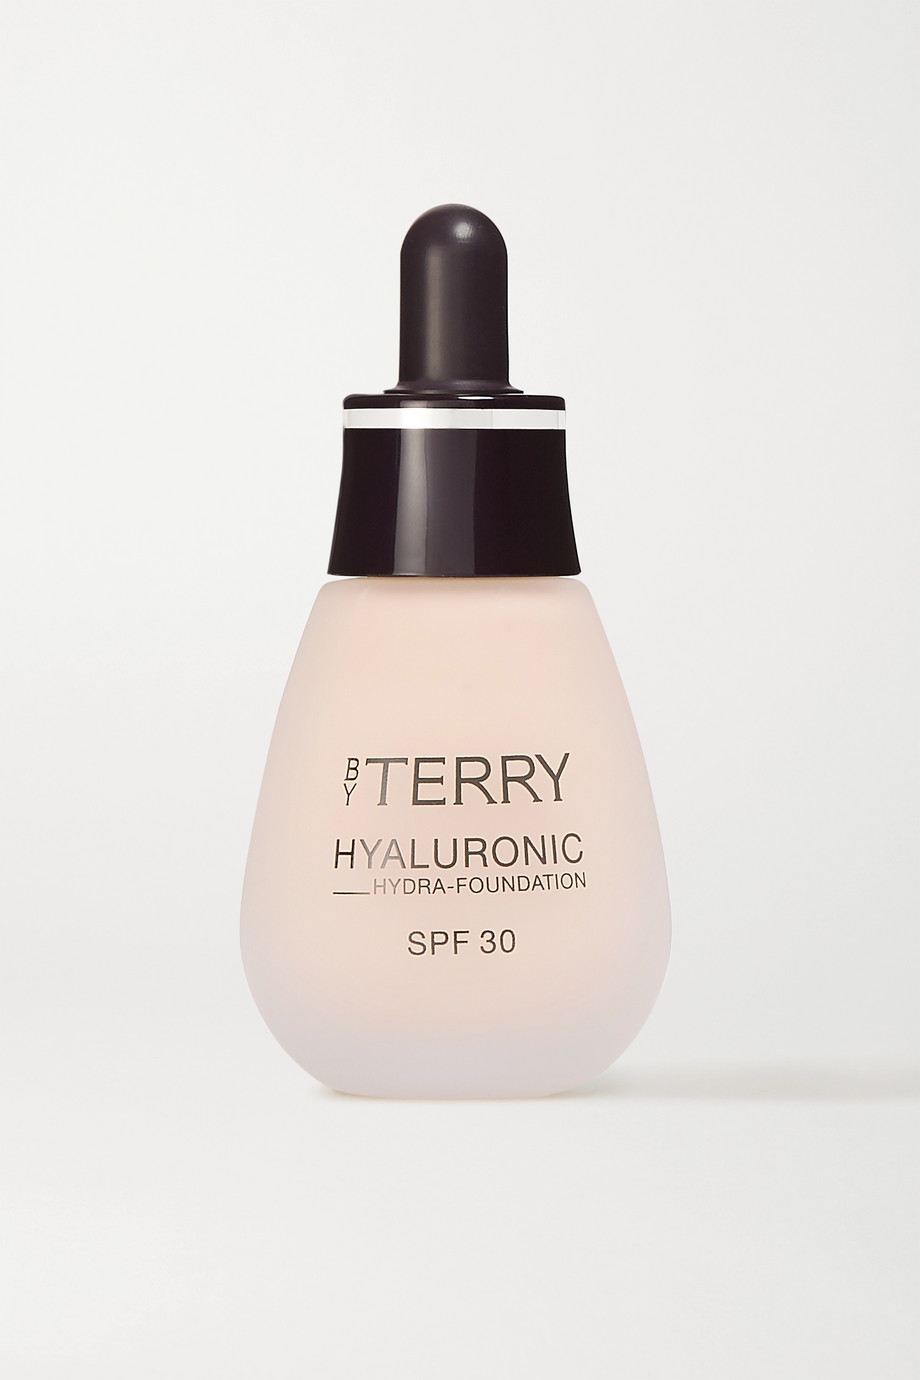 BY TERRY Fond de teint liquide soin perfection Hyaluronic Hydra-Foundation SPF 30, 100N